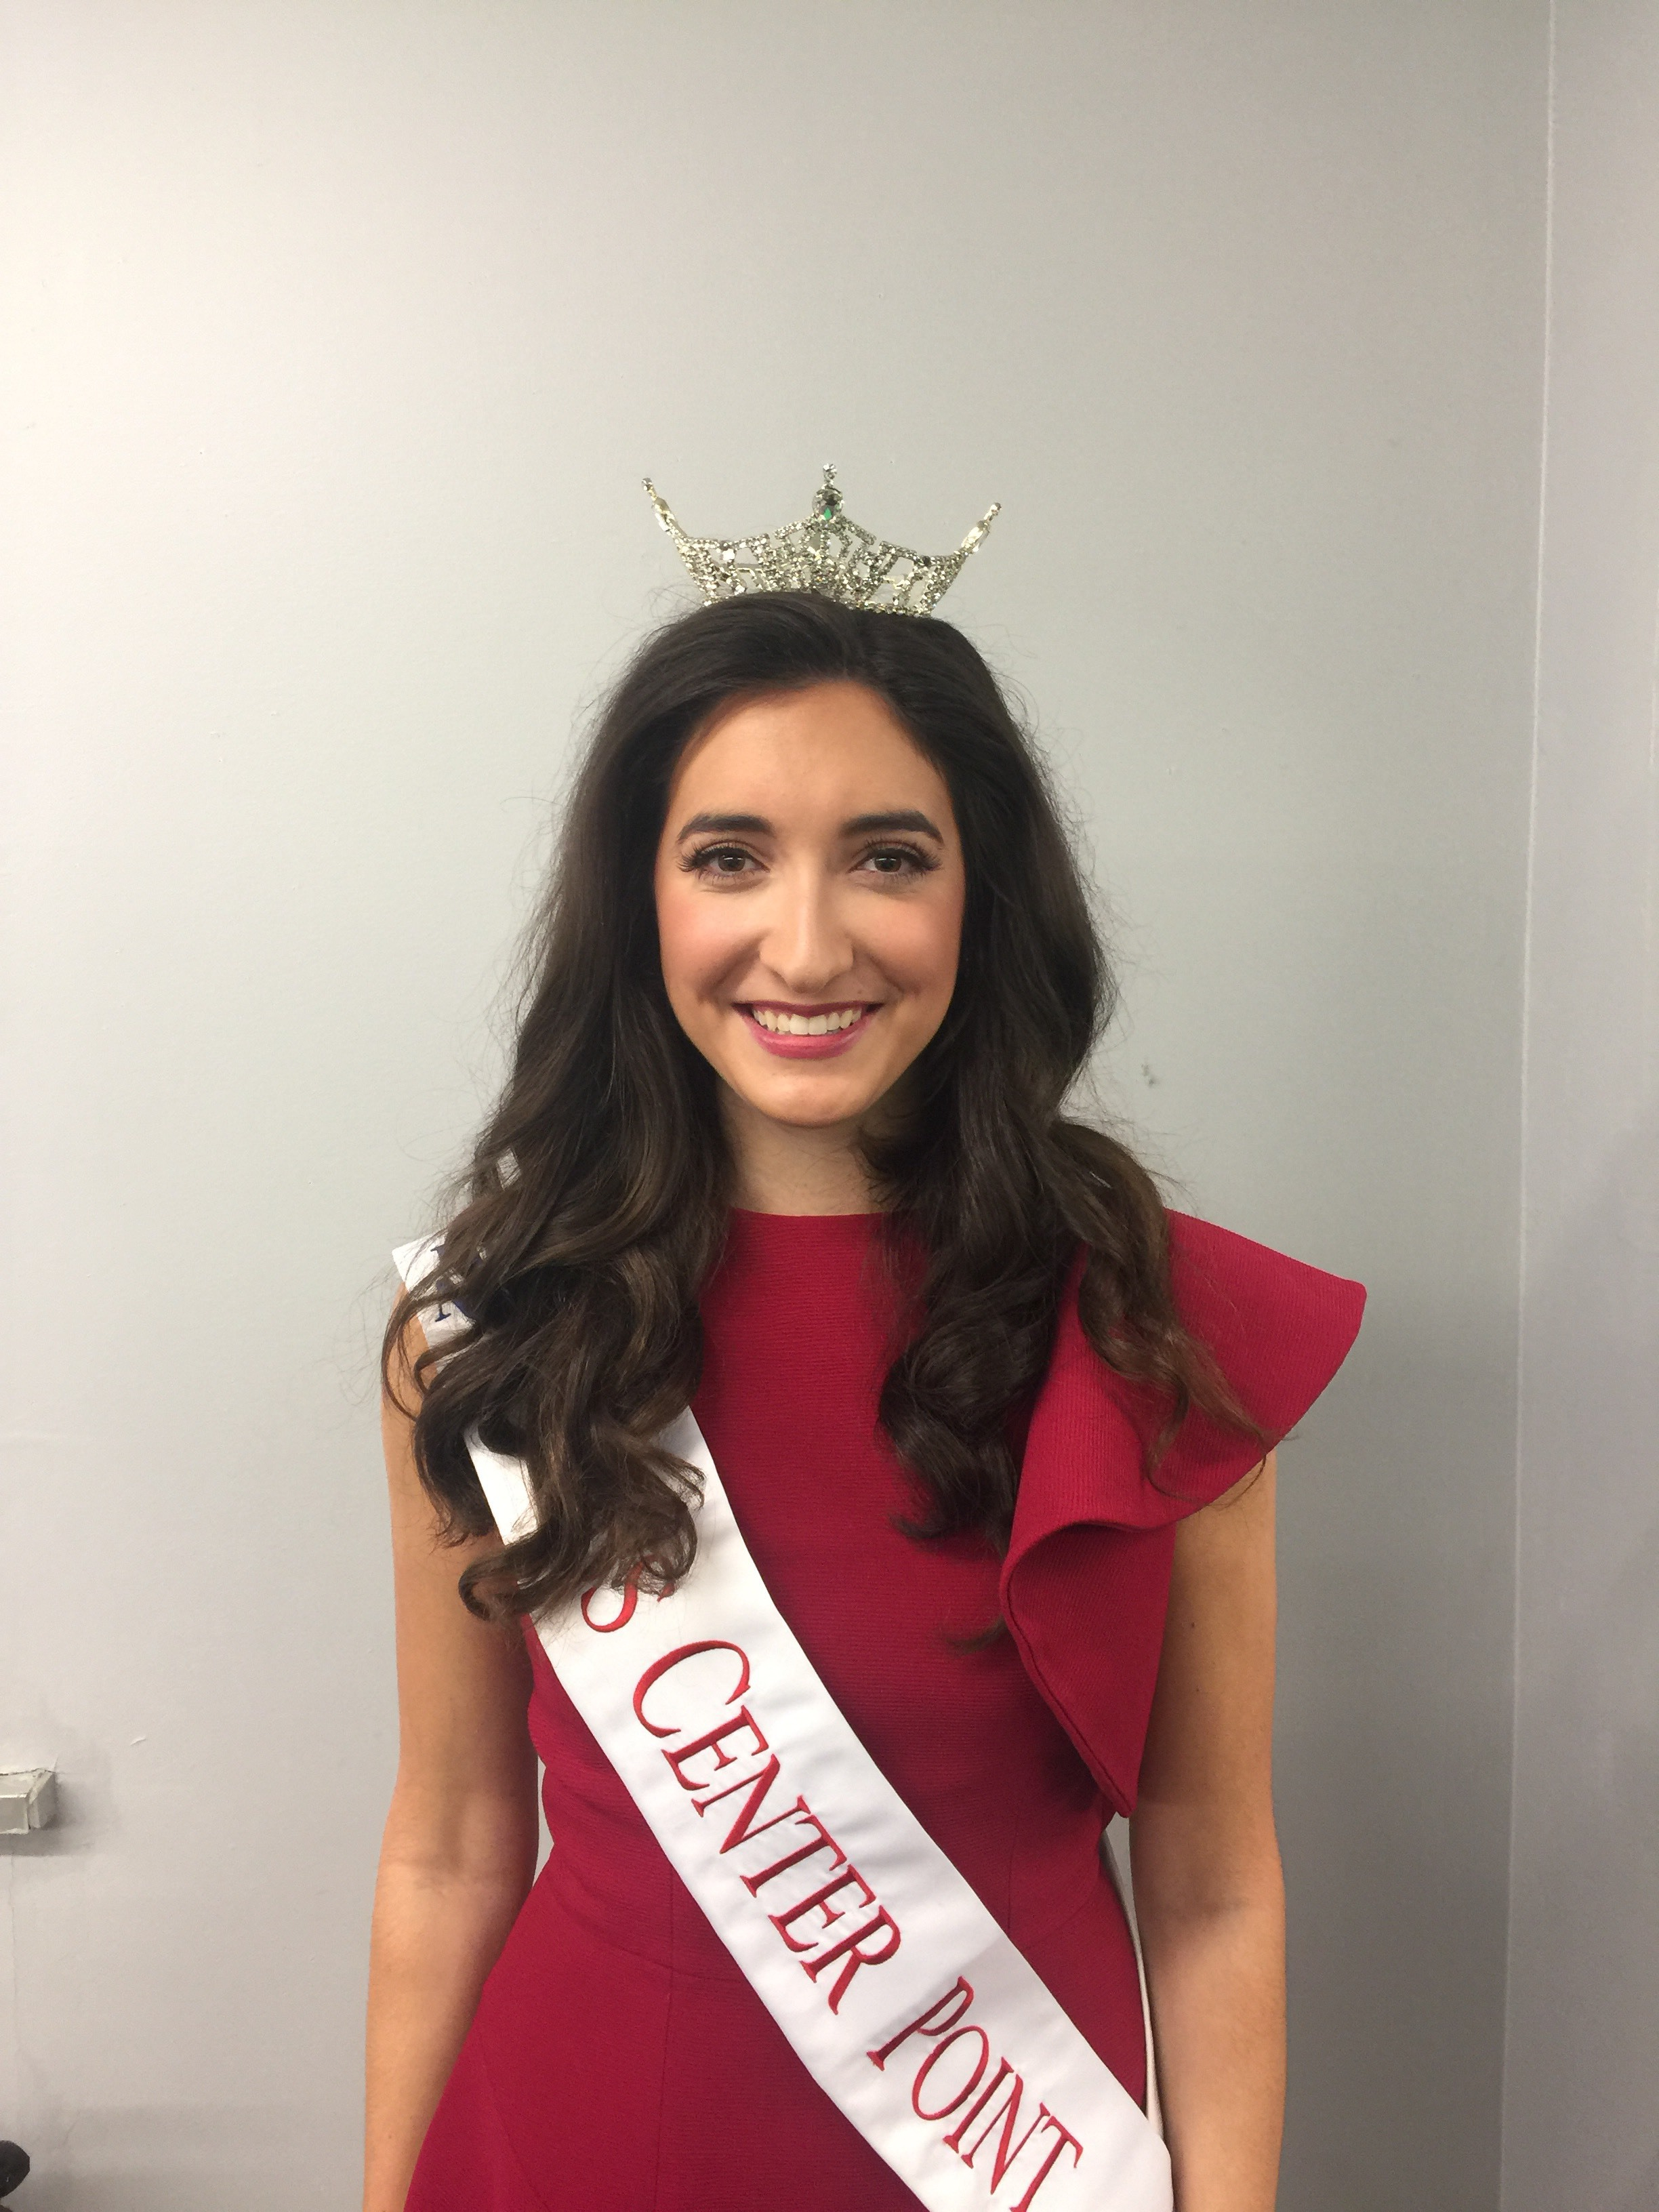 Miss Center Point proves beauty and brains aren't mutually exclusive